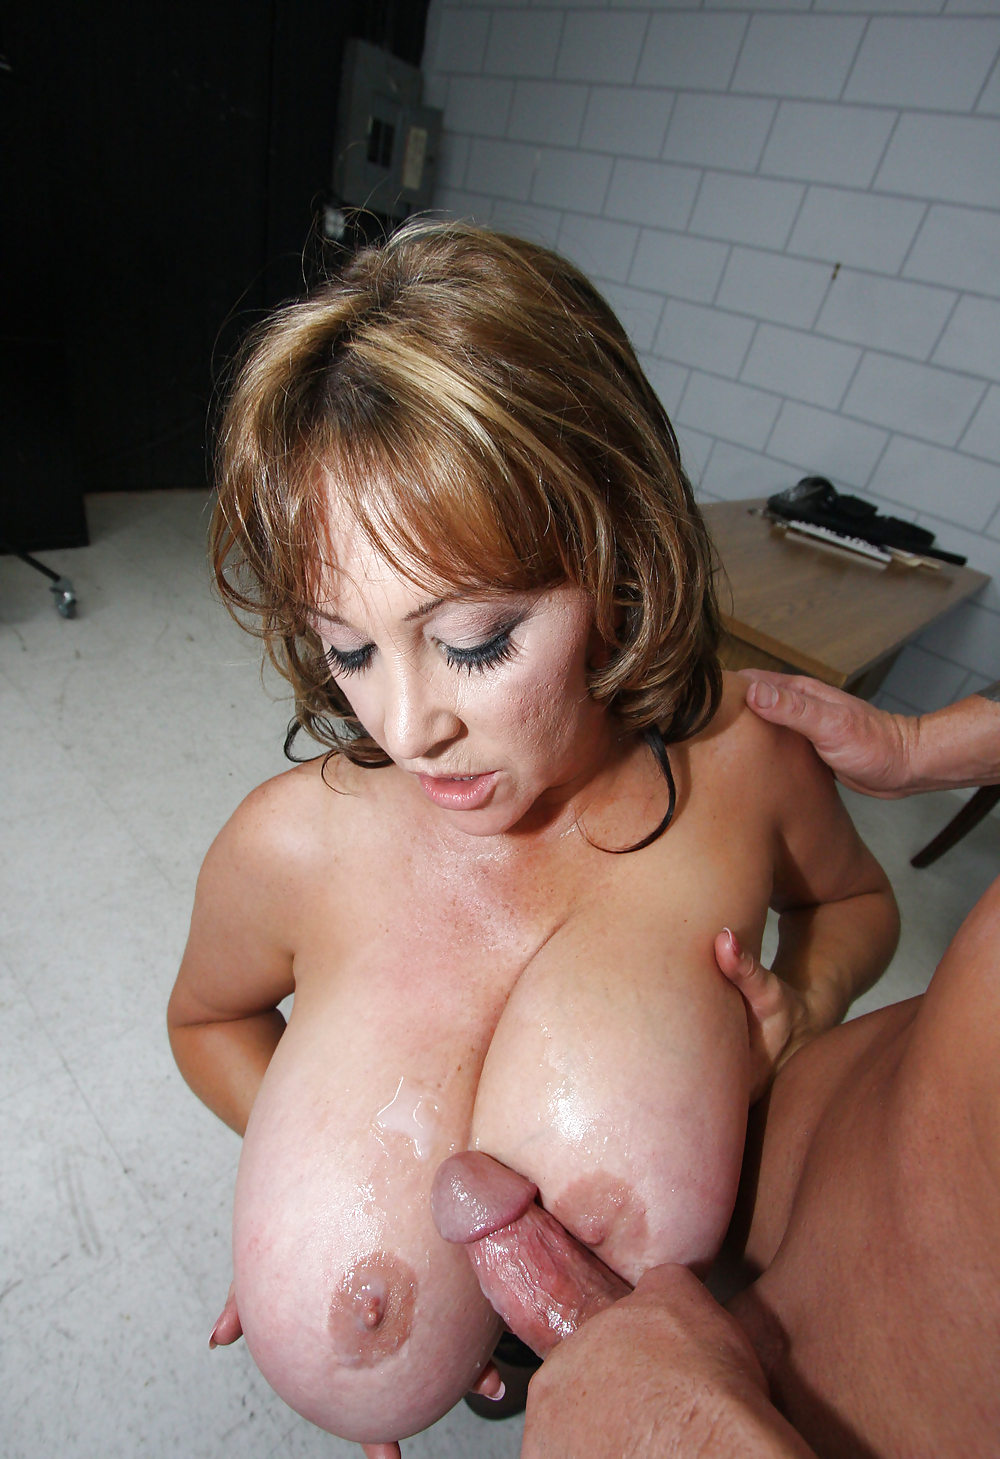 Milf titty pics, young cock mature